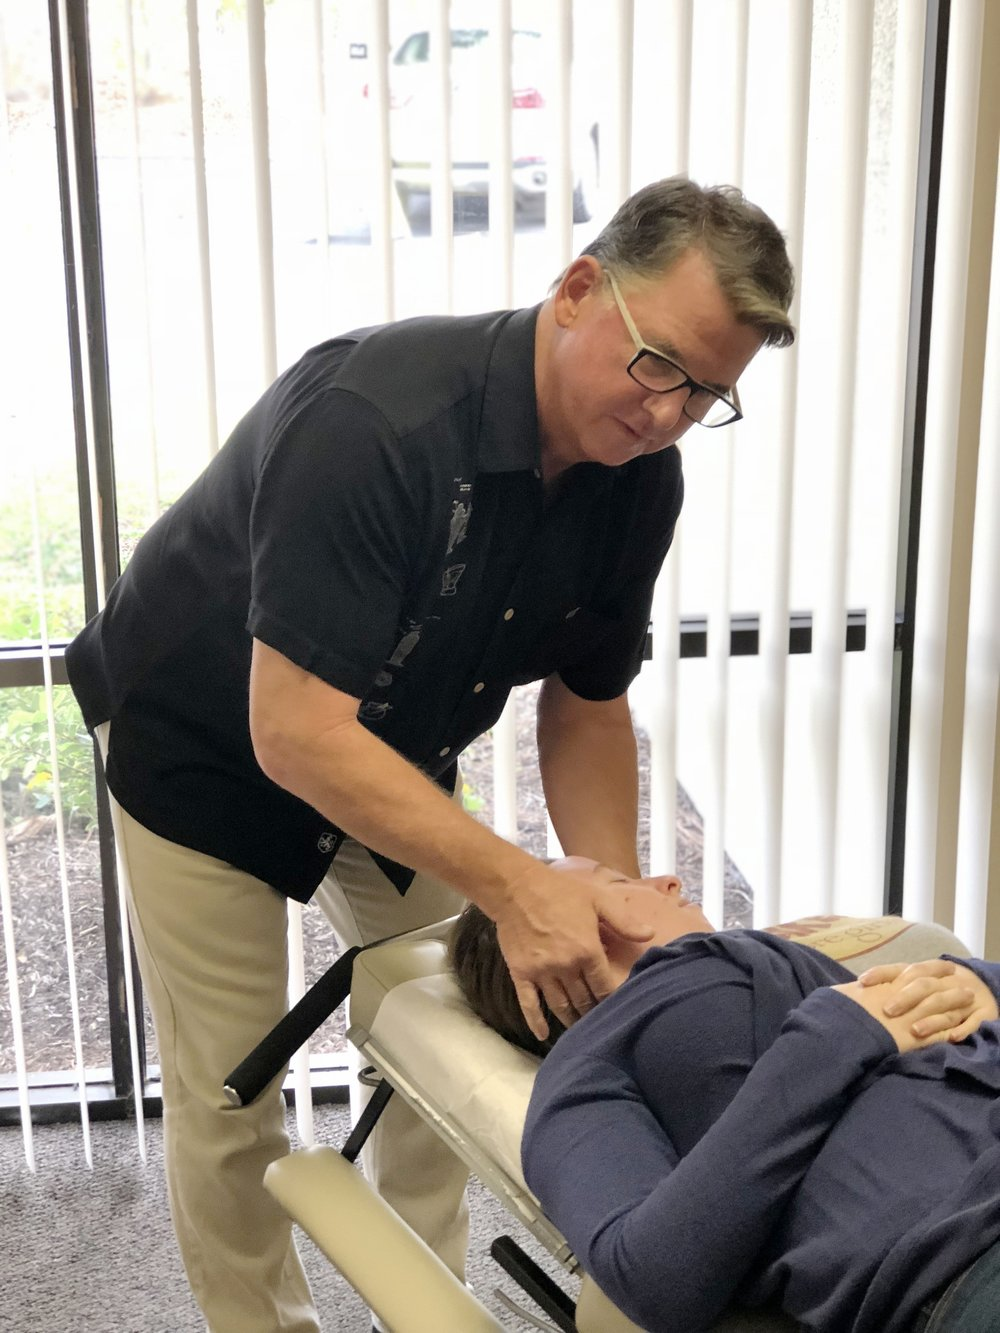 Let's get rid of pain. - Mission Hills Chiropractic is here to get people out of pain and feeling happy and healthy again through chiropractic adjustments, acupuncture, massage, sharing health tips and more.New with us? Book here and enjoy a complementary consultation! We also verify insurance for free too.